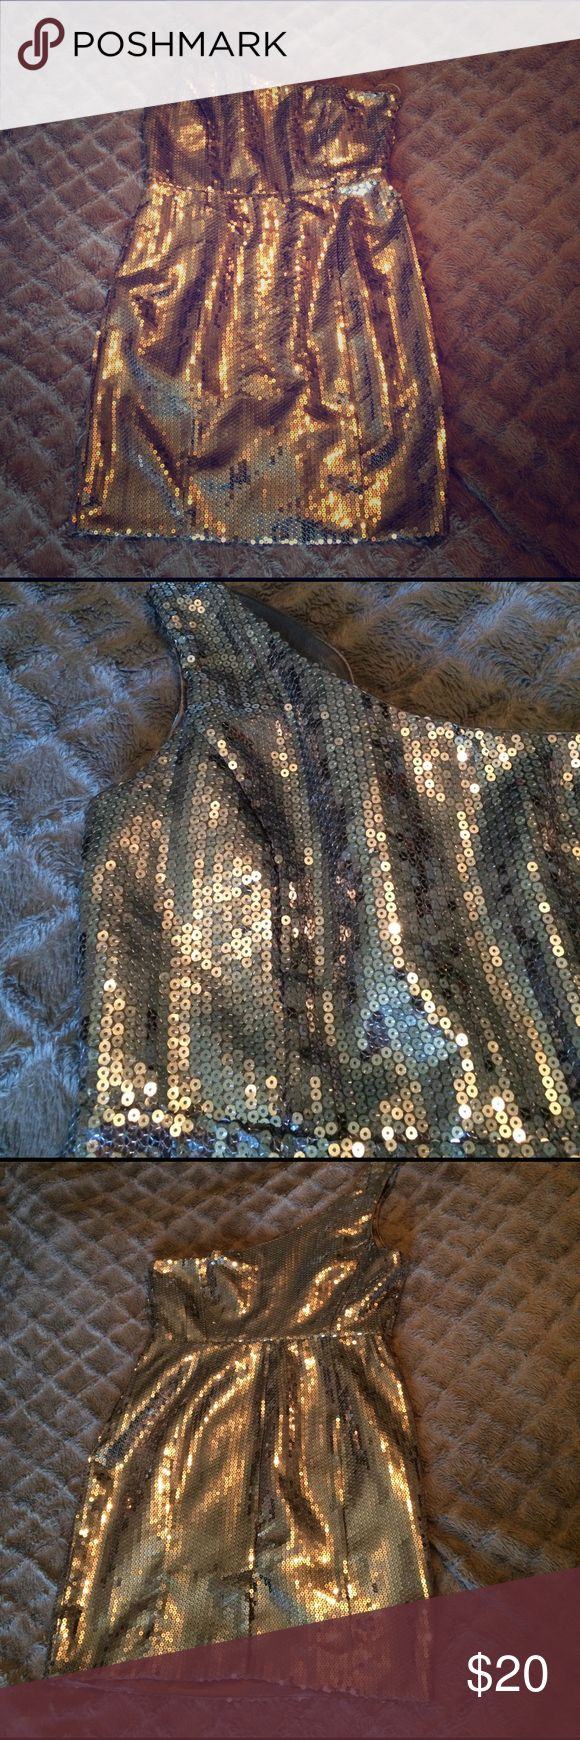 Selling this Forever21 silver sequined mid-thigh dress on Poshmark! My username is: decafeokay_gb. #shopmycloset #poshmark #fashion #shopping #style #forsale #Forever 21 #Dresses & Skirts